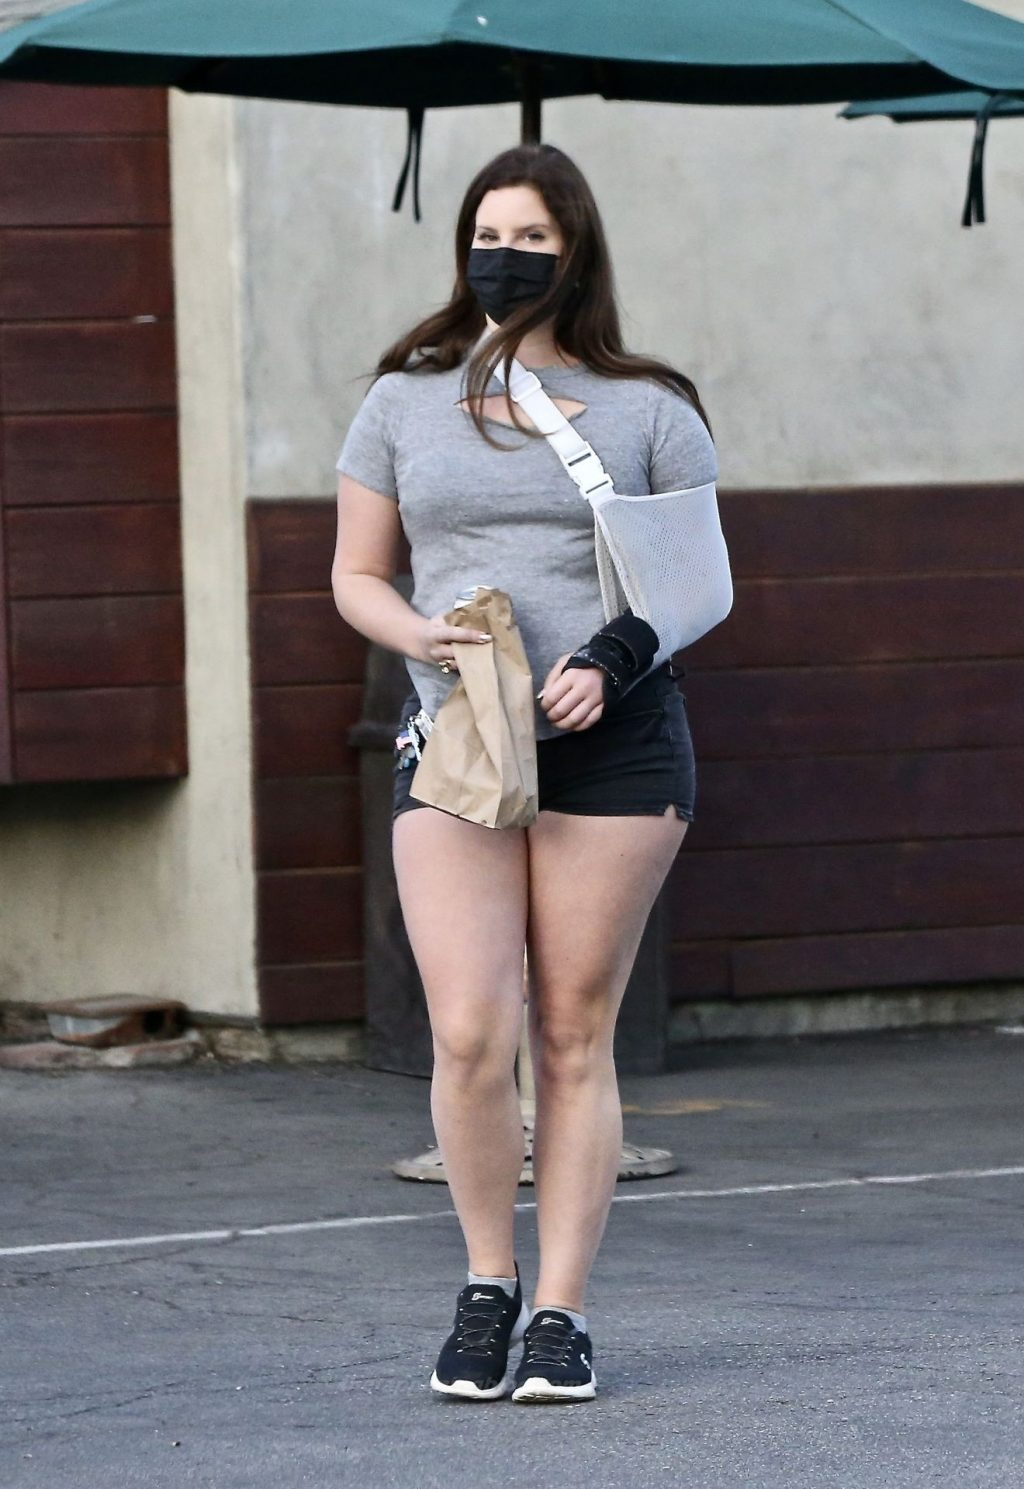 Leggy Lana Del Rey Gets Tacos Before Heading to the Clinic (23 Photos)